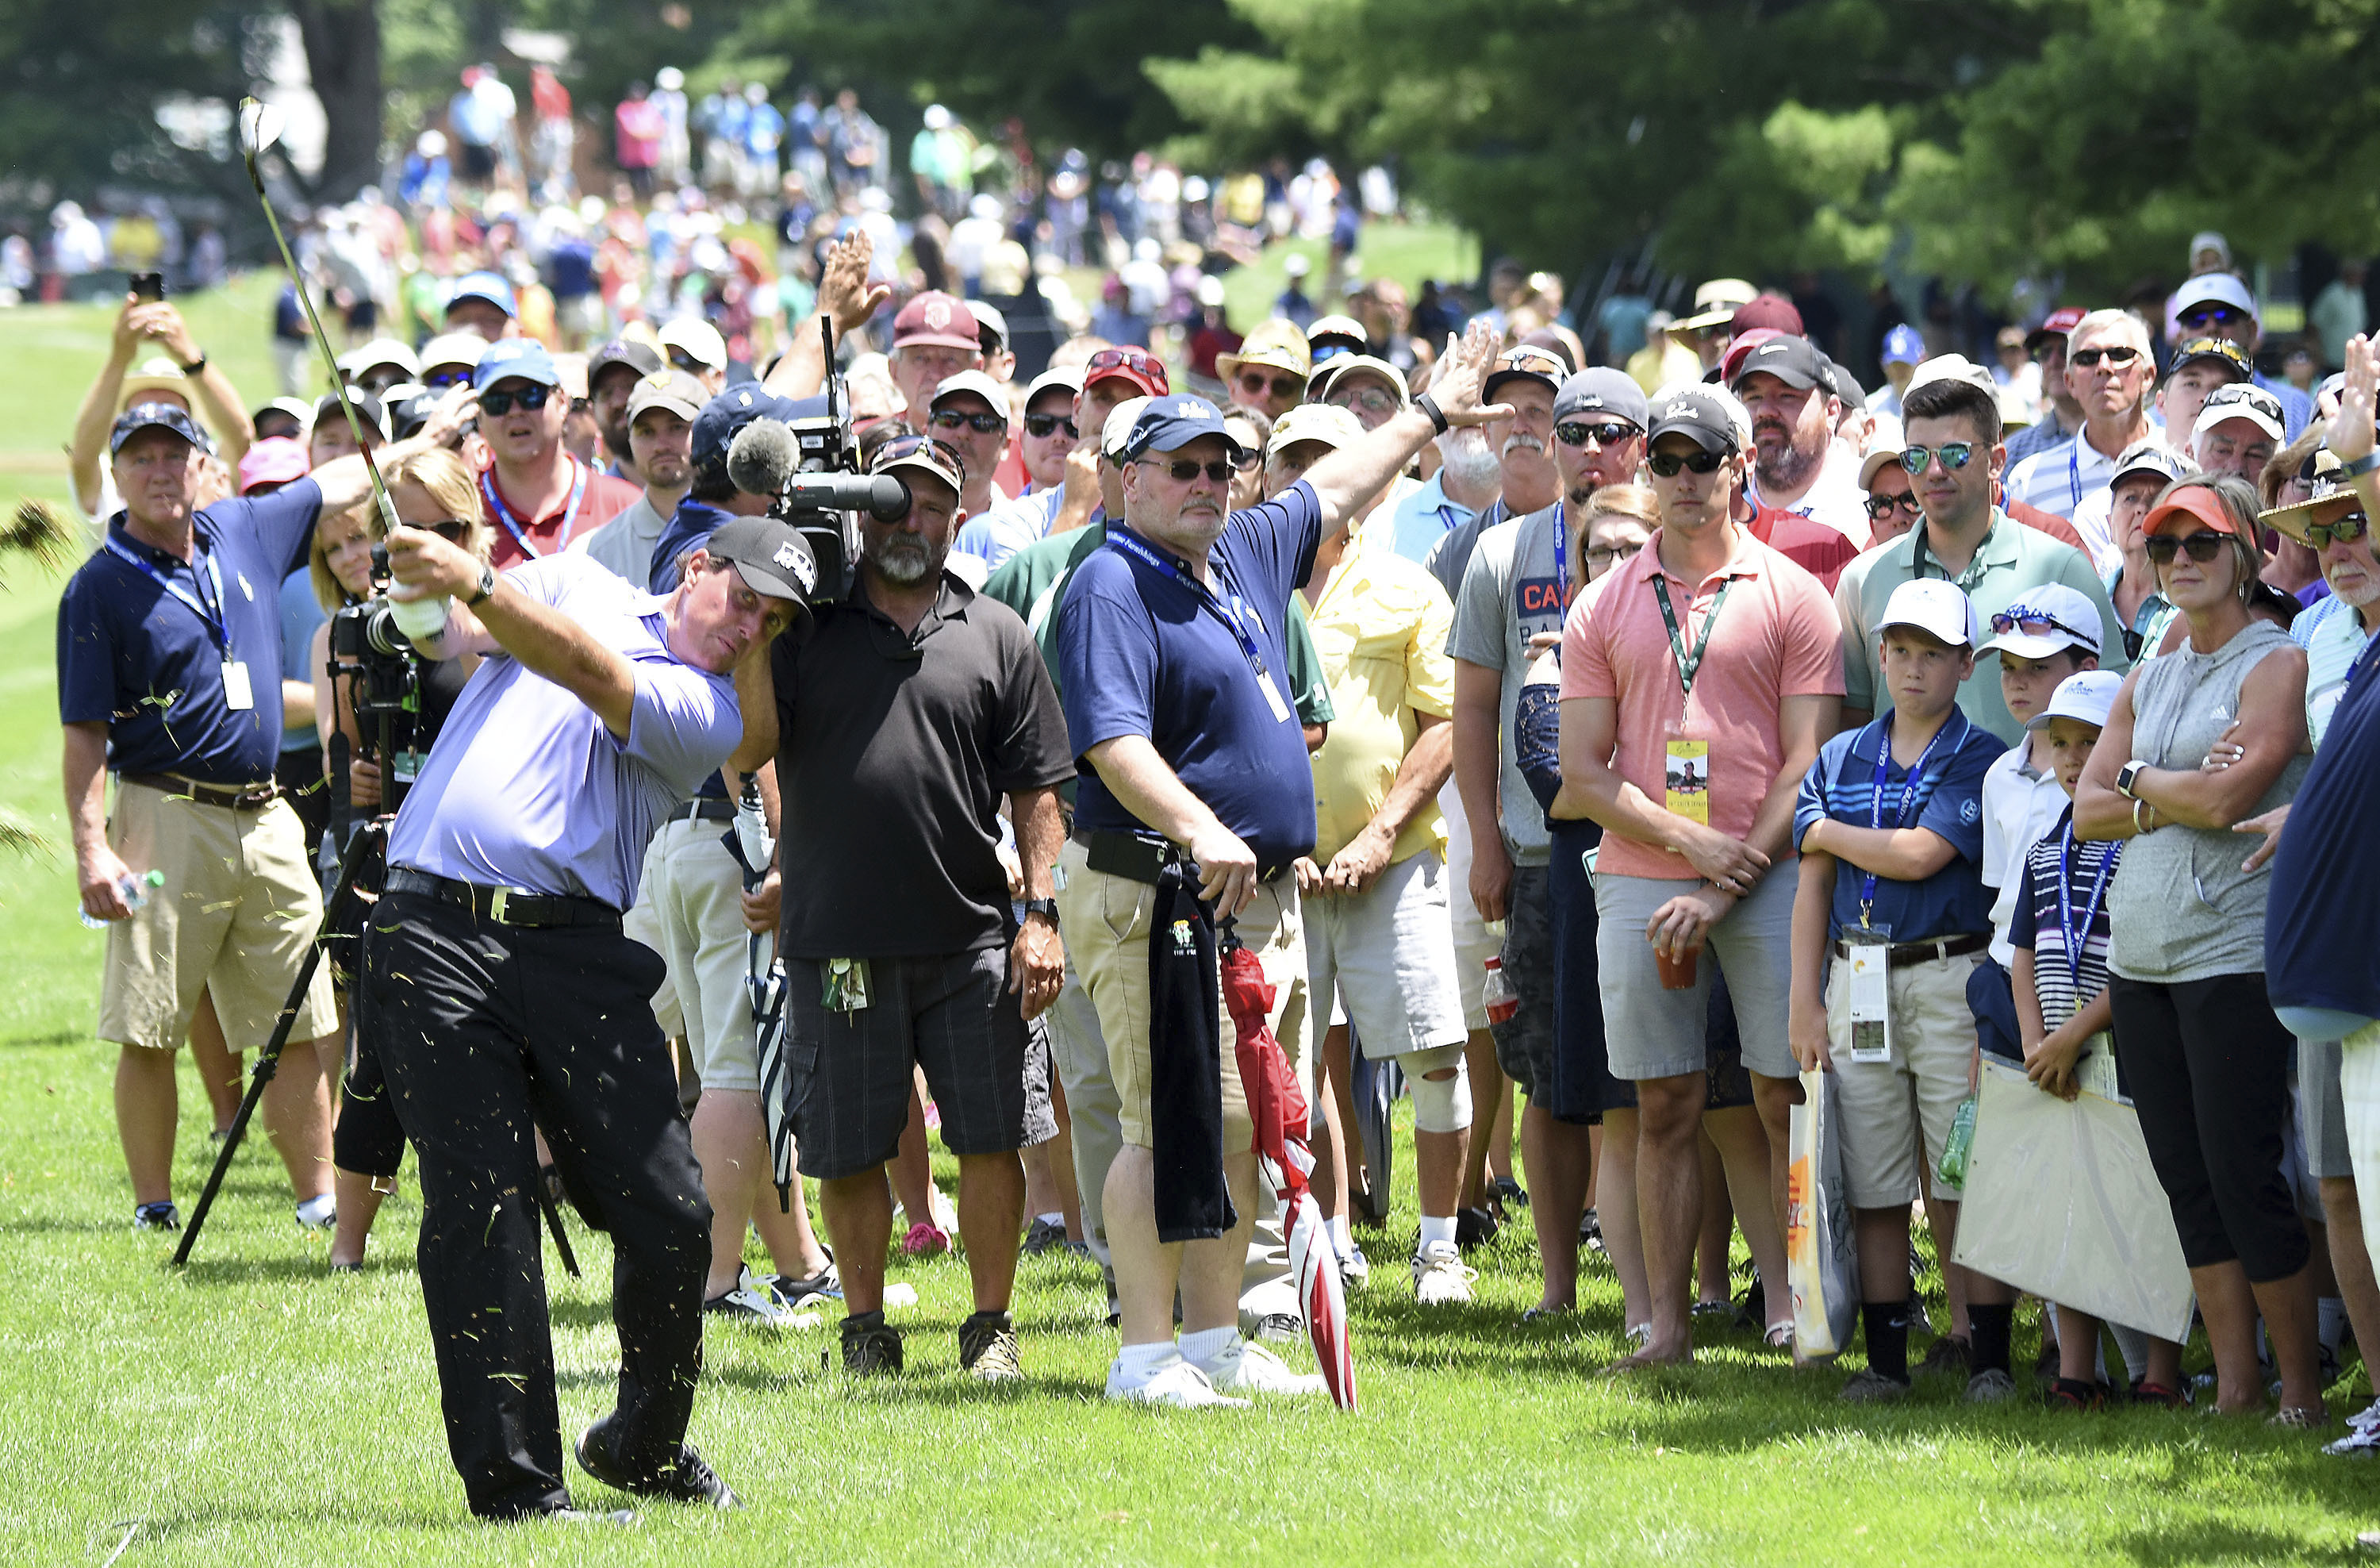 Phil Mickelson hits his second shot on the ninth hole during the second round of The Greenbrier Classic golf tournament Friday, July 7, 2017, in White Sulphur Springs, W.Va. (Rick Barbero/The Register-Herald via AP)